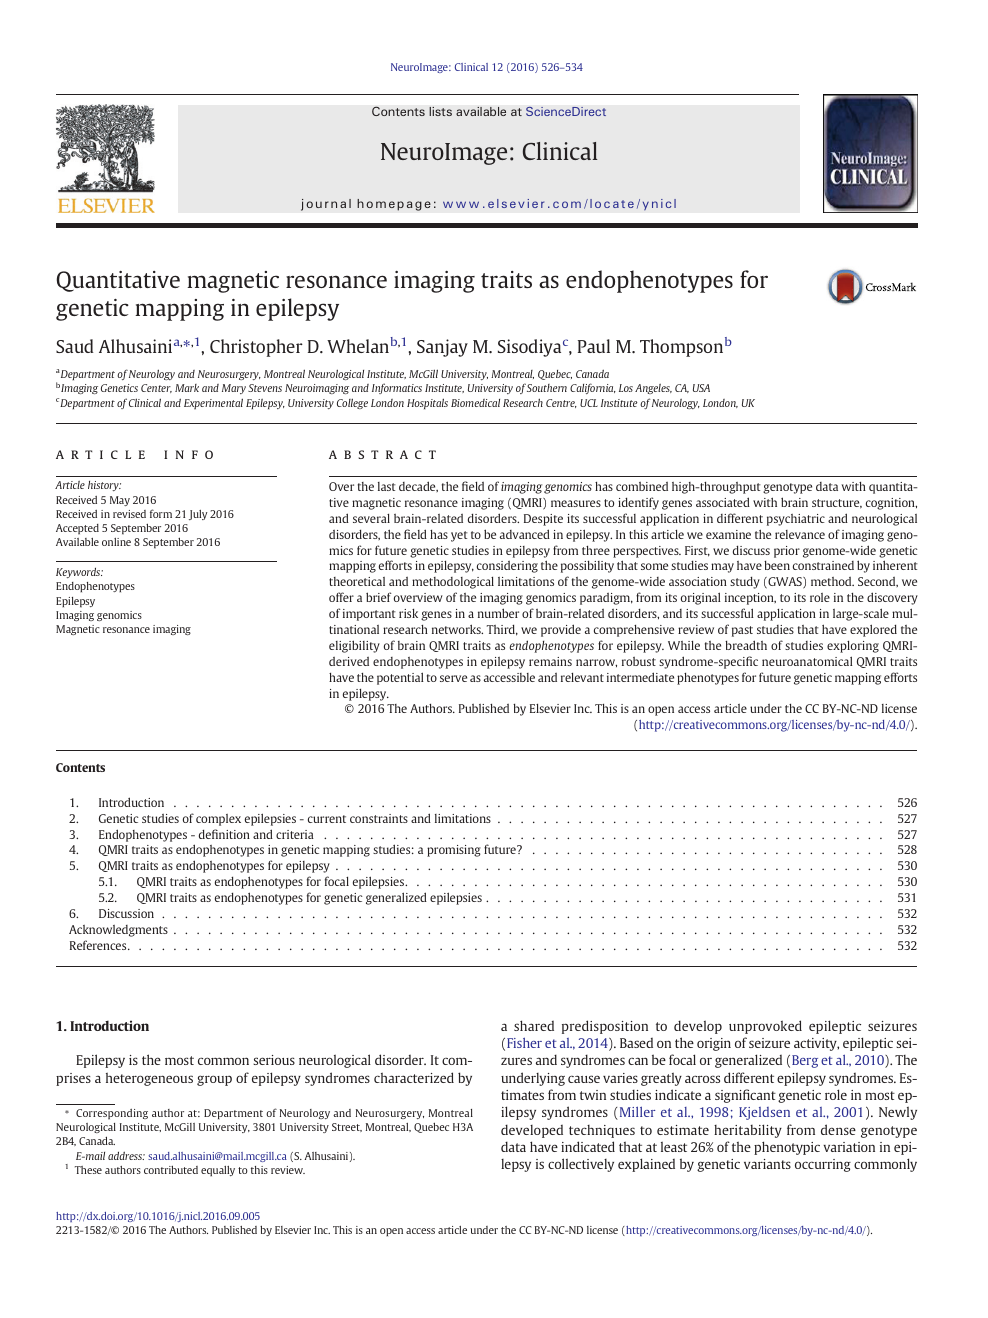 Quanative magnetic resonance imaging traits as ... on thomas morgan's linkage mapping, cognitive mapping, dna mapping, community mapping, mental mapping,